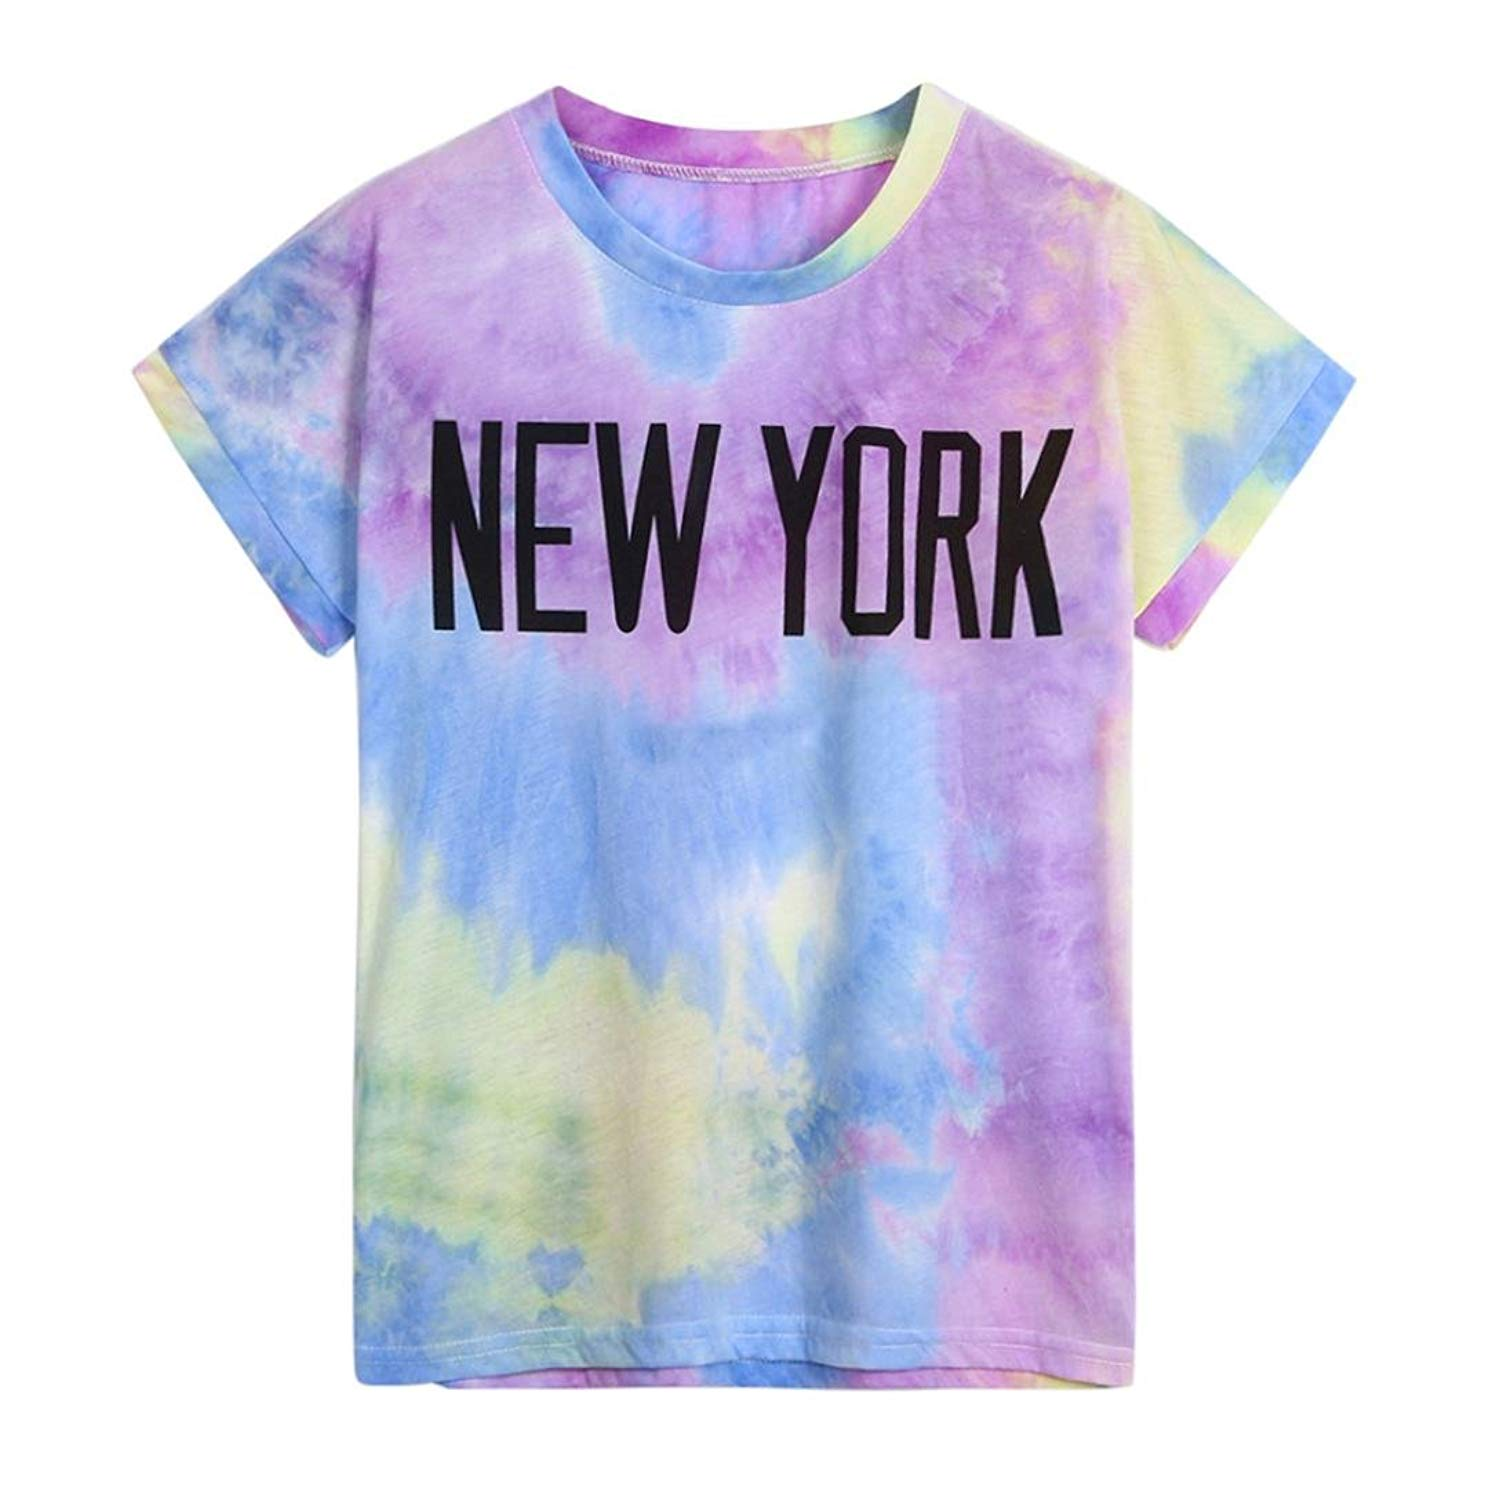 Gyoume Women Printed Letters Tops Summer Short Sleeved Blouse O-Neck T-Shirt Casual Colorful Lady Summer Tee